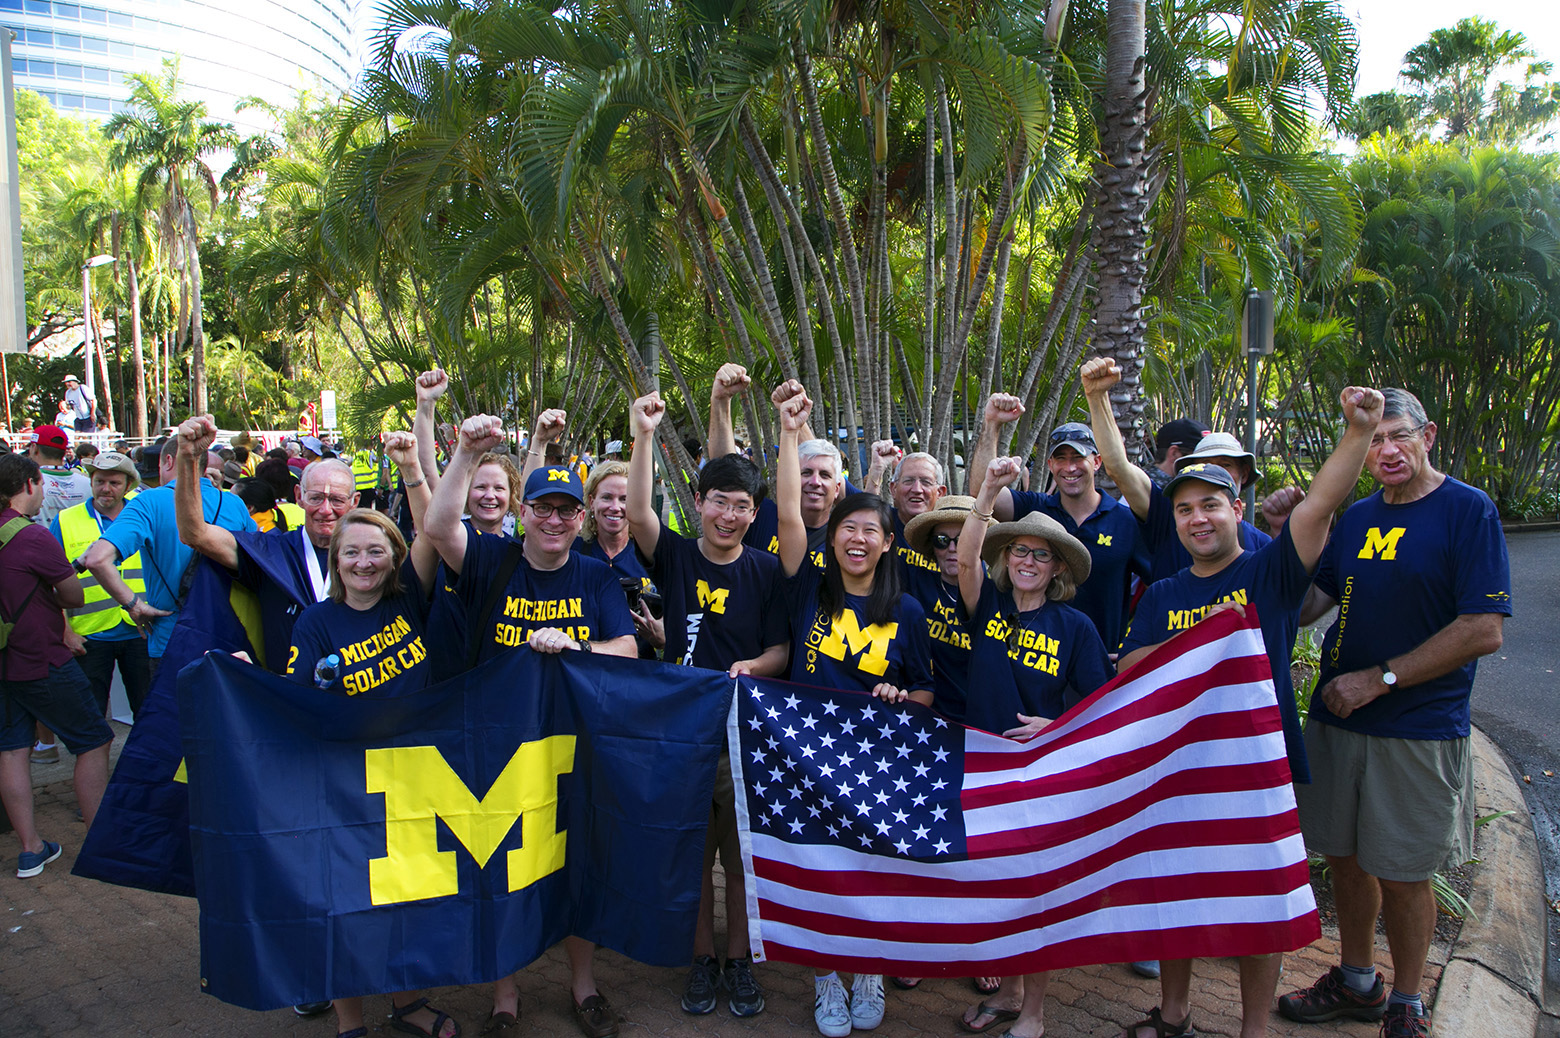 Michigan fans and alumni show support at the starting line.